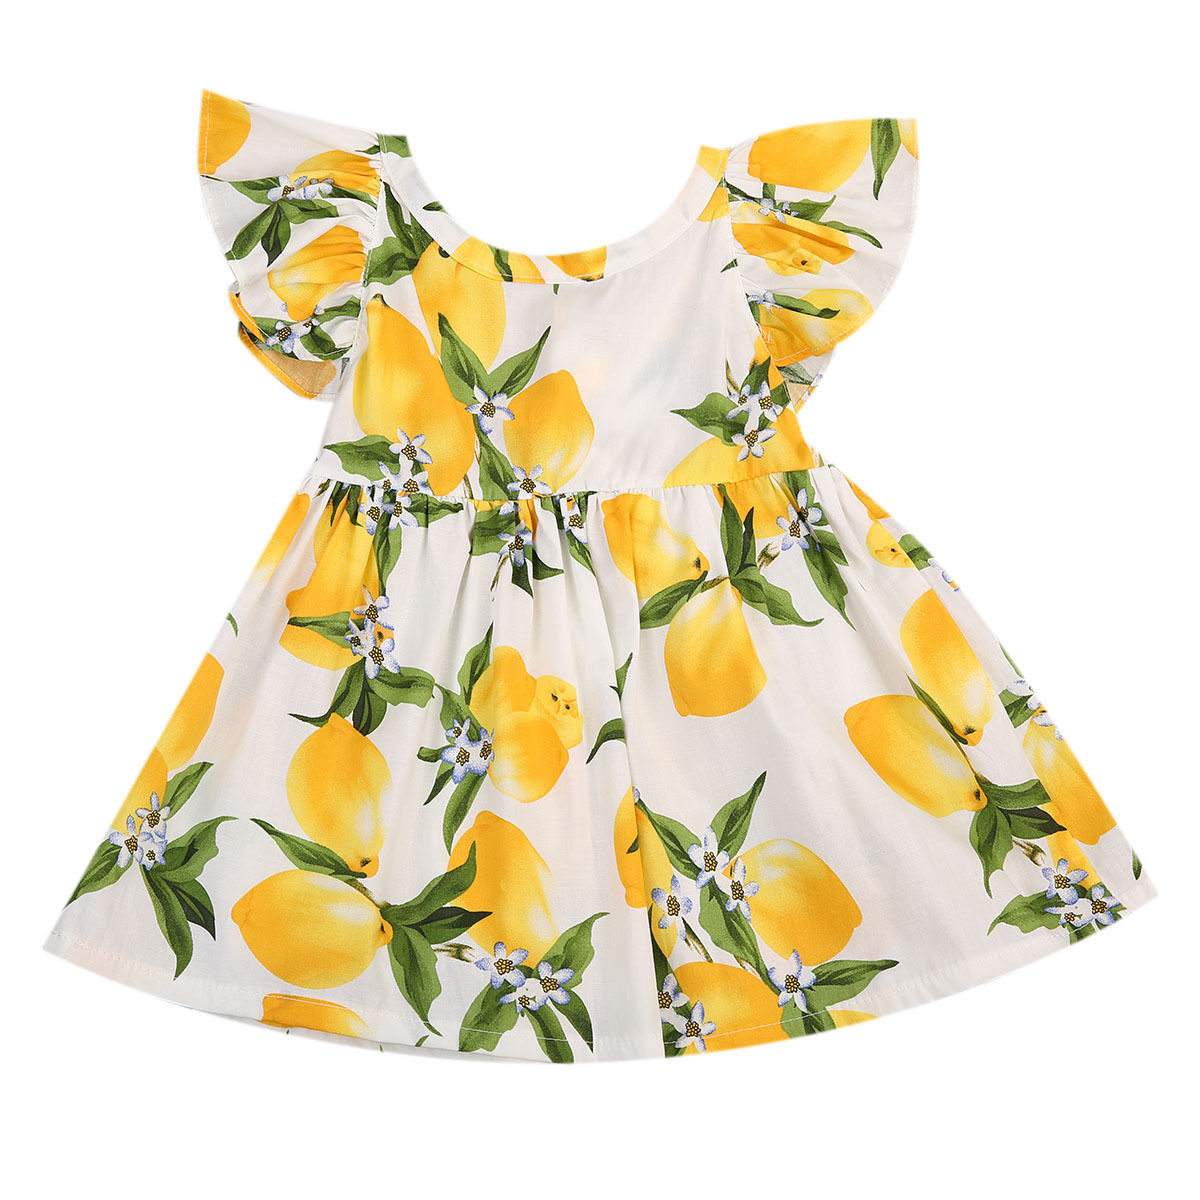 Newborn Infant Fashion Dresses Baby Girls Back Bandage One-piece Dress Toddler Kid Lemon Print  Holiday